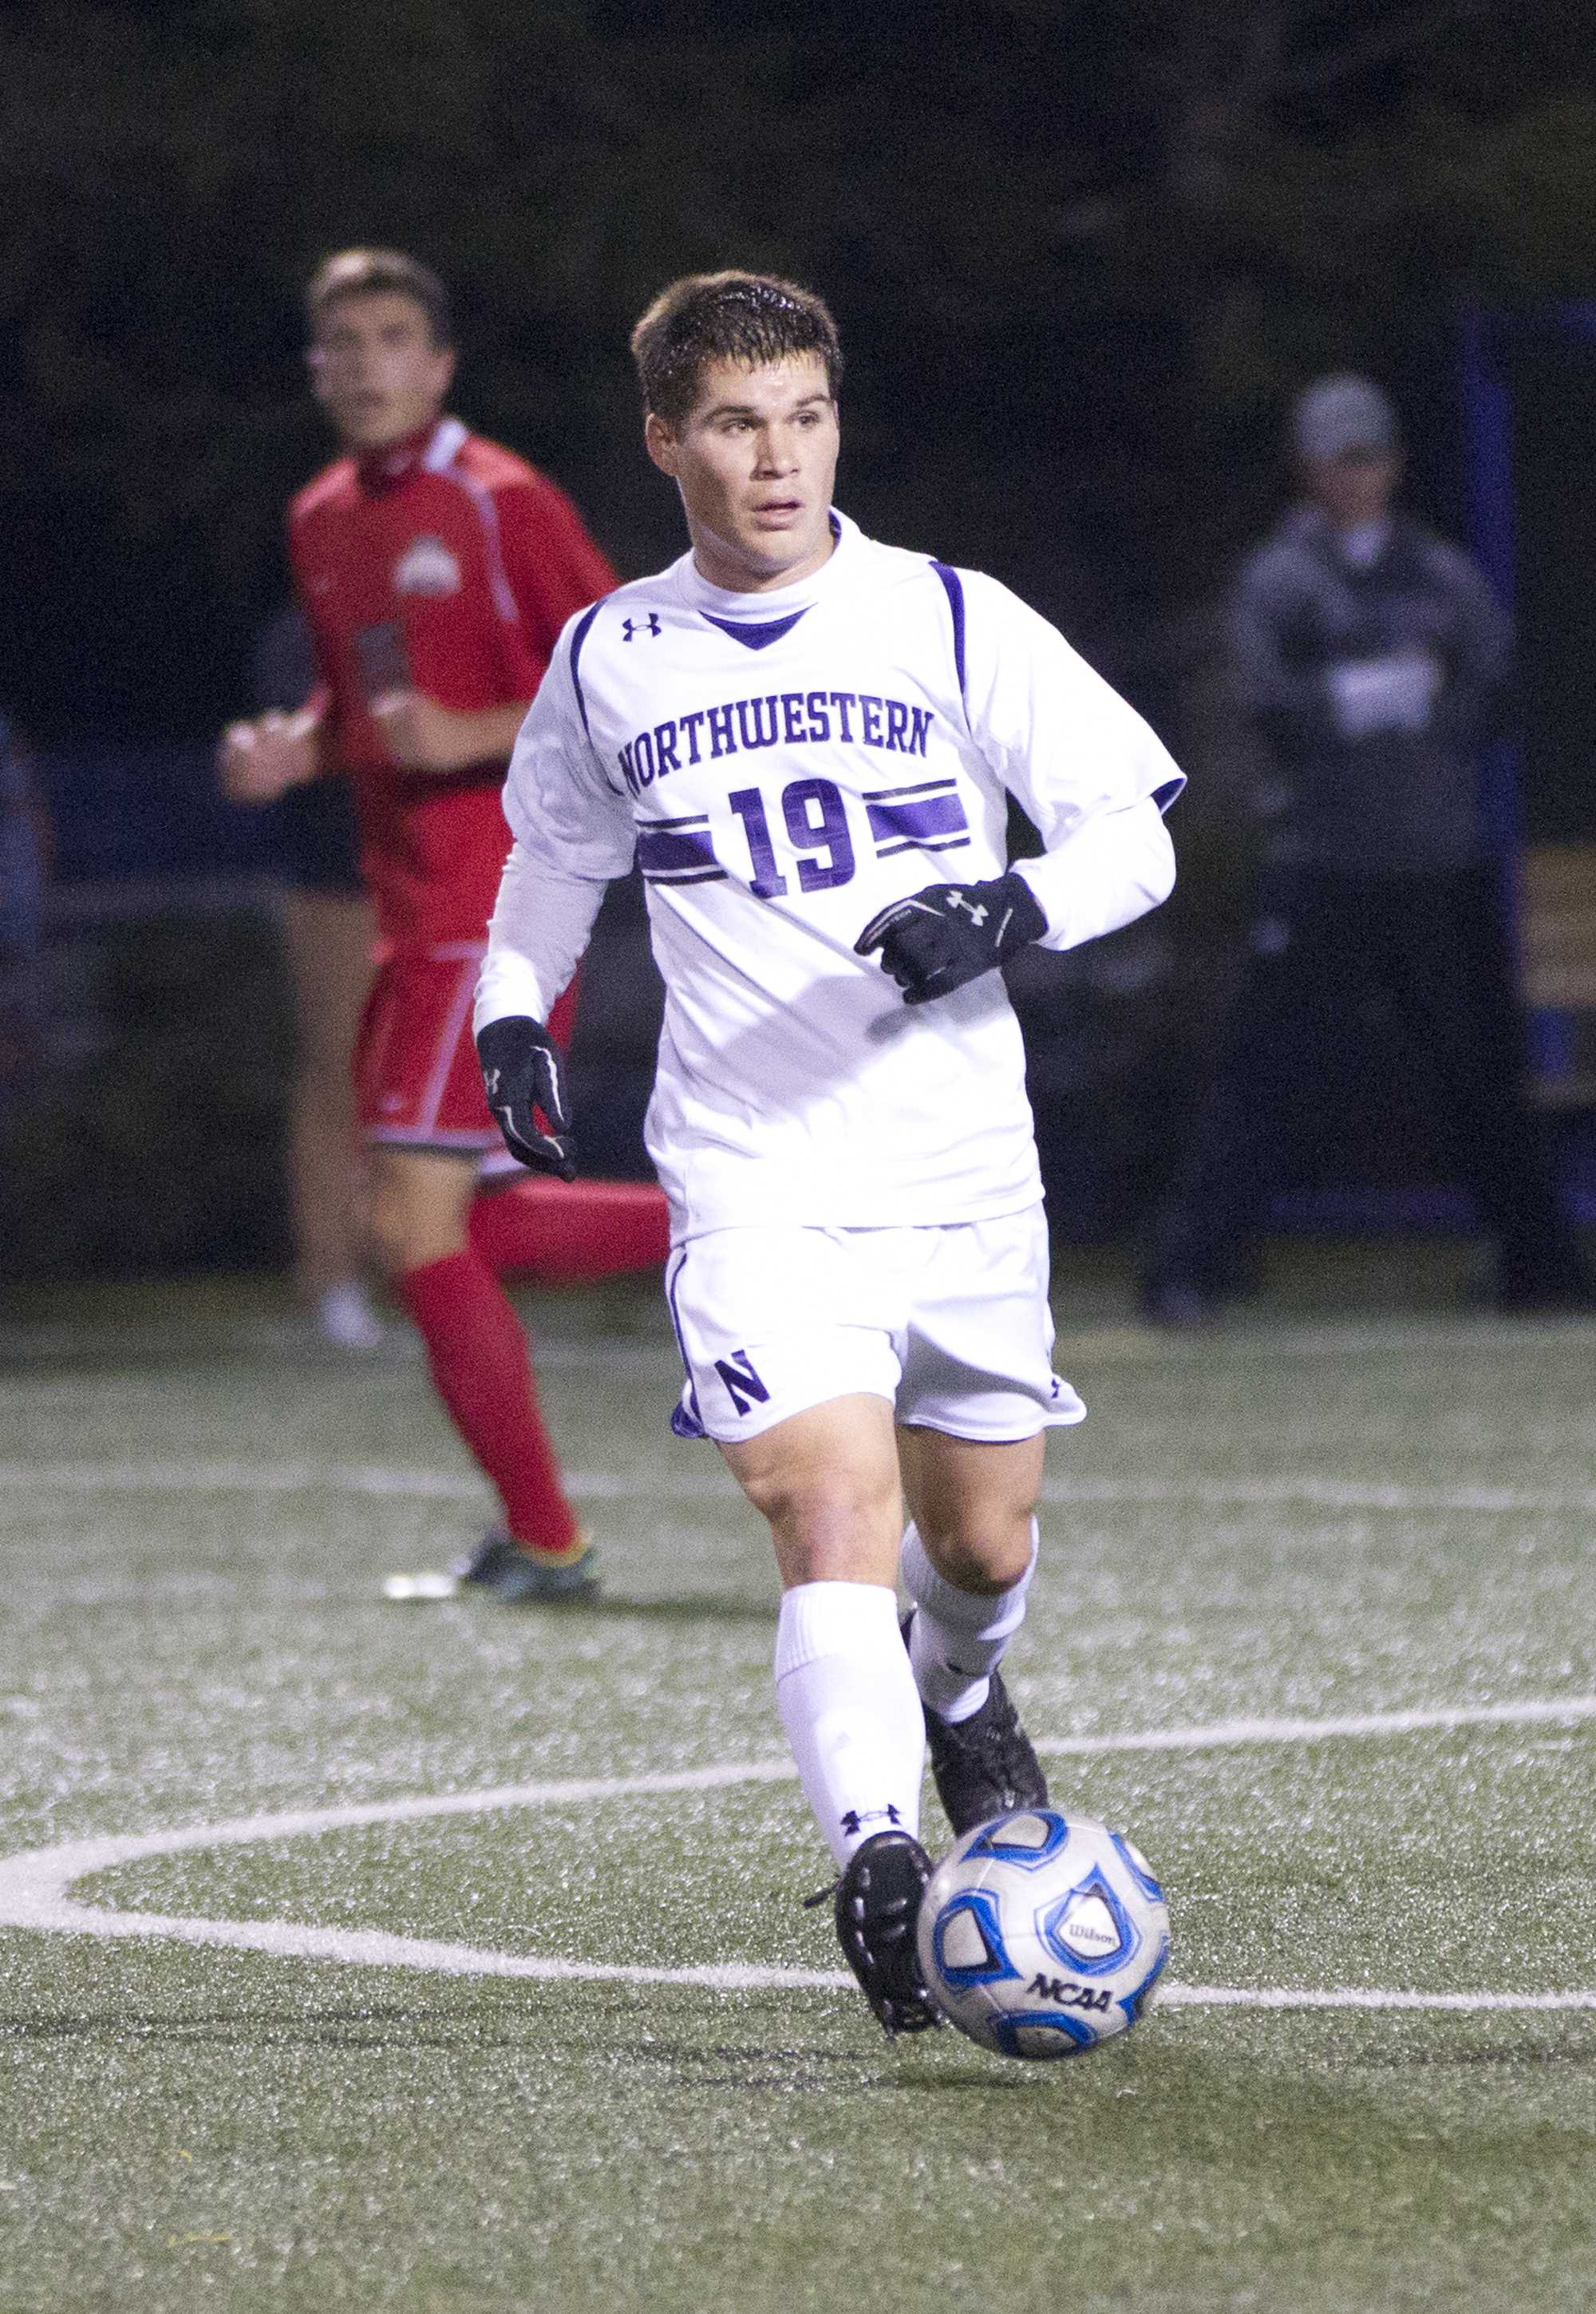 Northwestern midfielder Kyle Shickel celebrates after his goal against Ohio State. Shickel scored one of the Cats' two goals Wednesday evening.